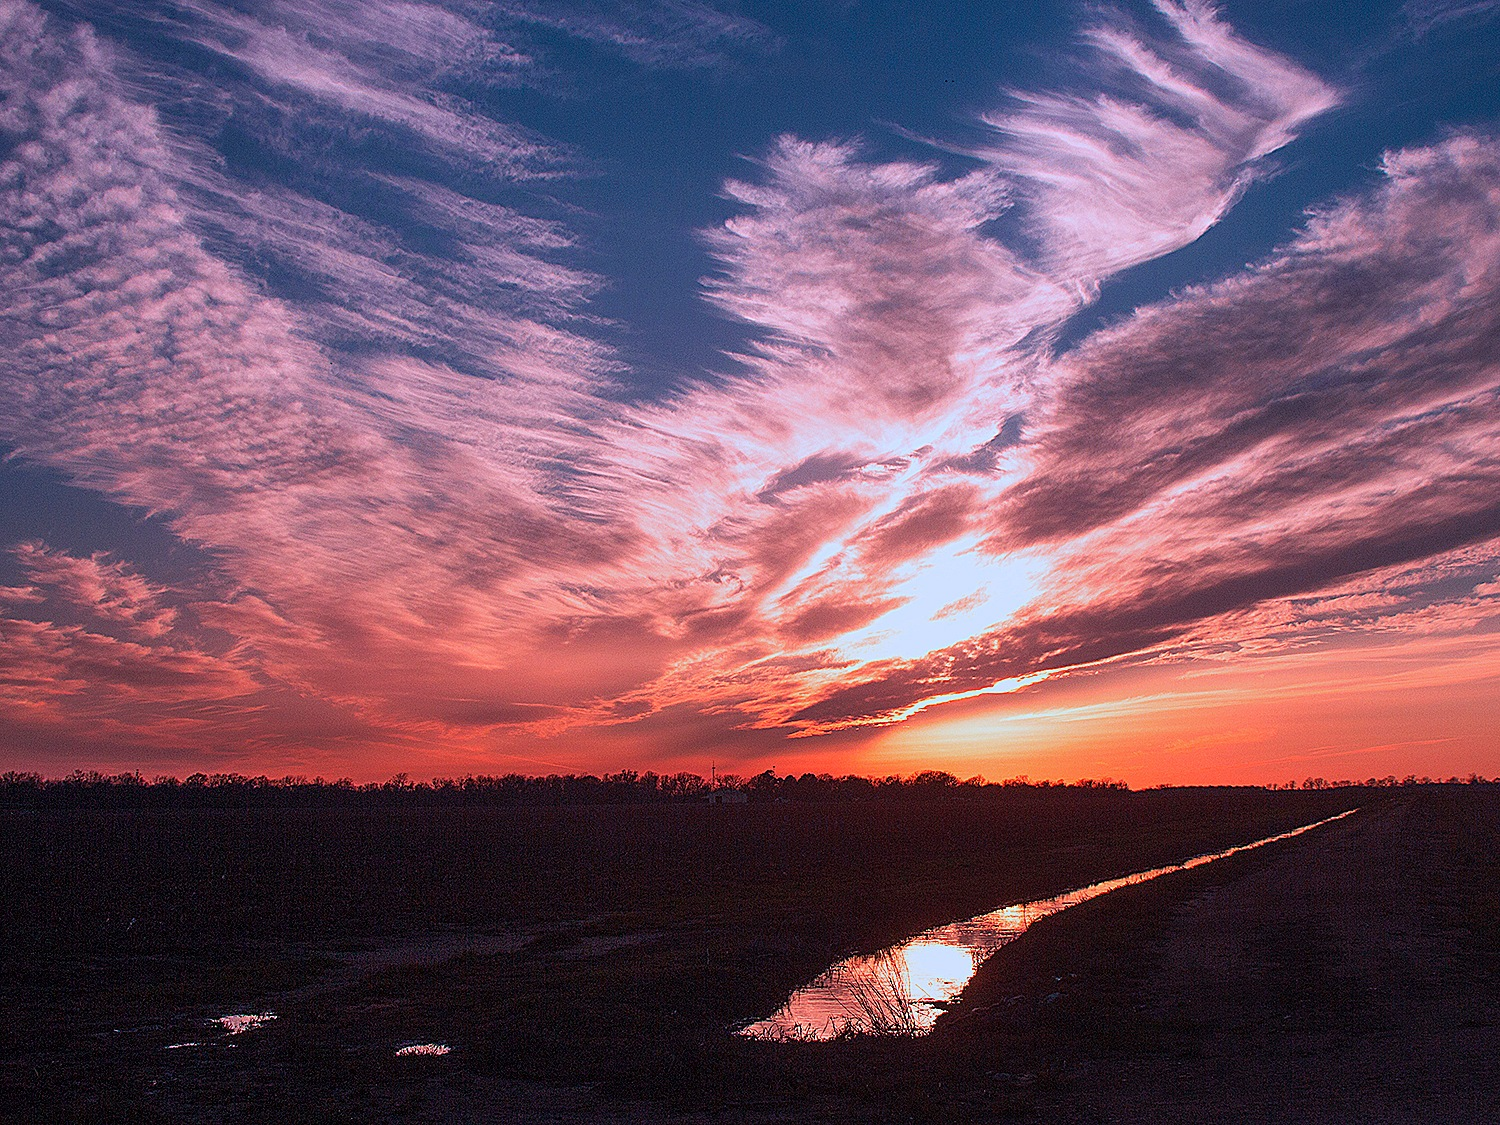 Mares Tails at Sunset by Joe Seawright